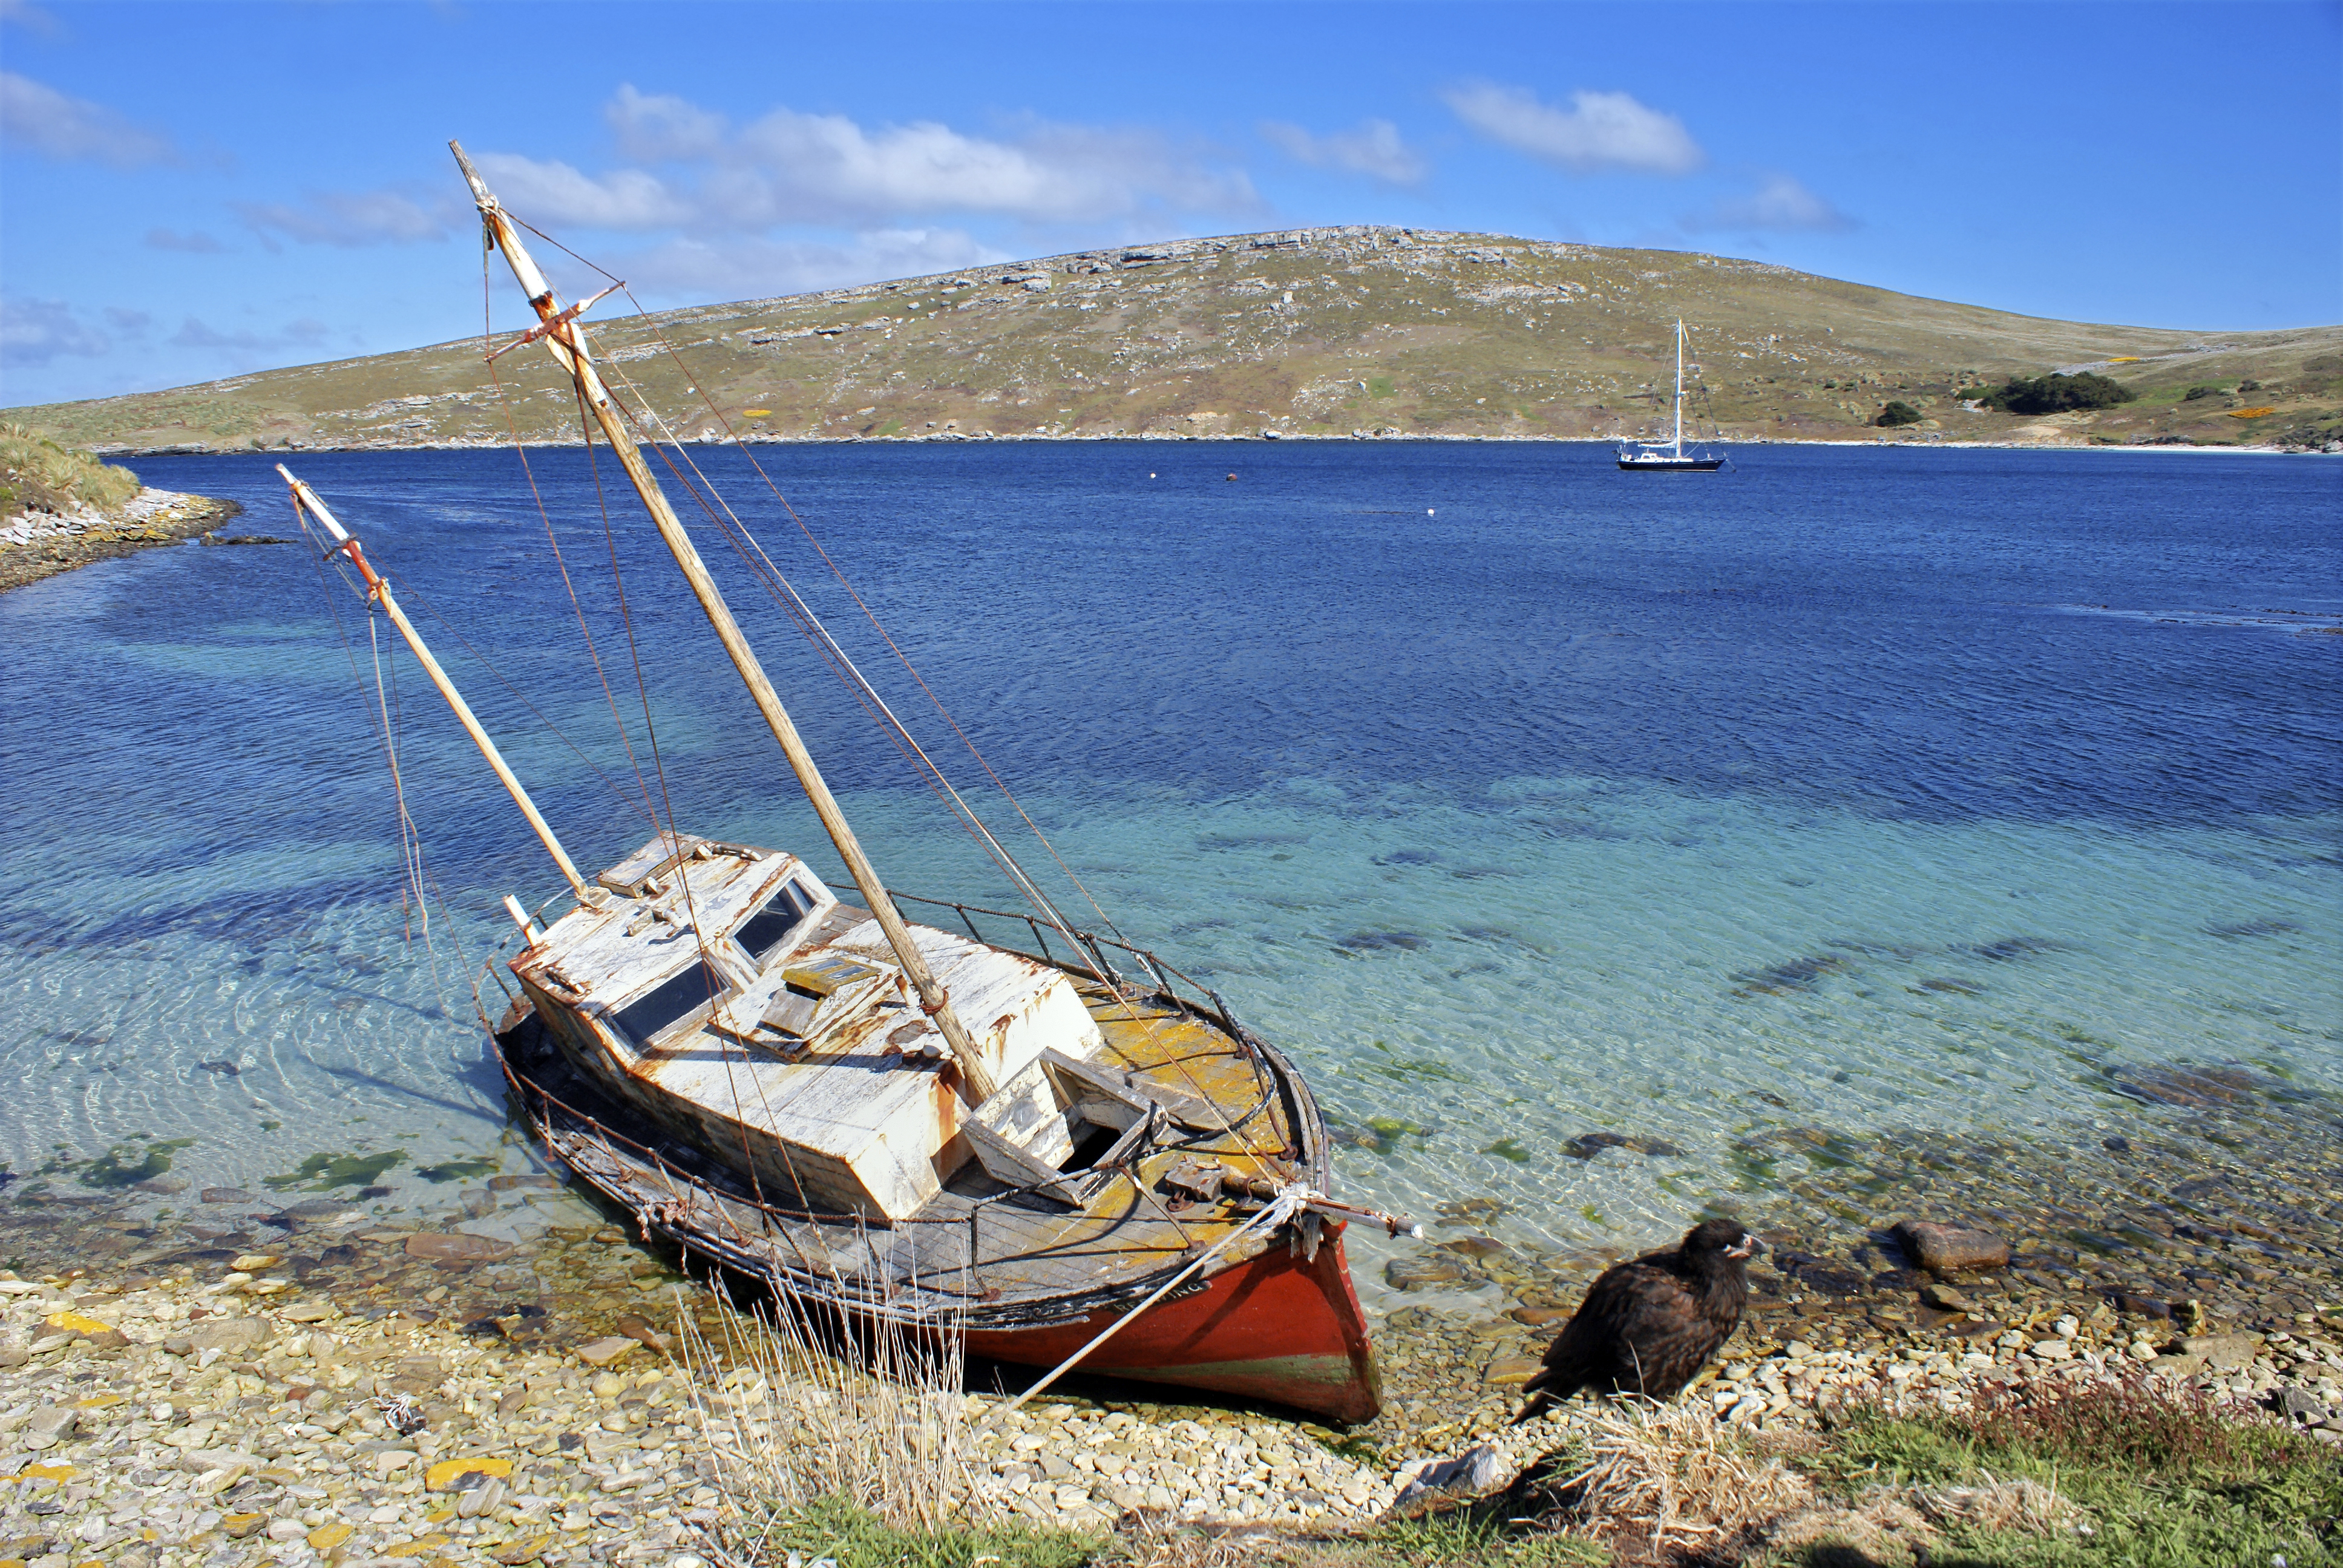 Ship grounded on the Falkland Islands